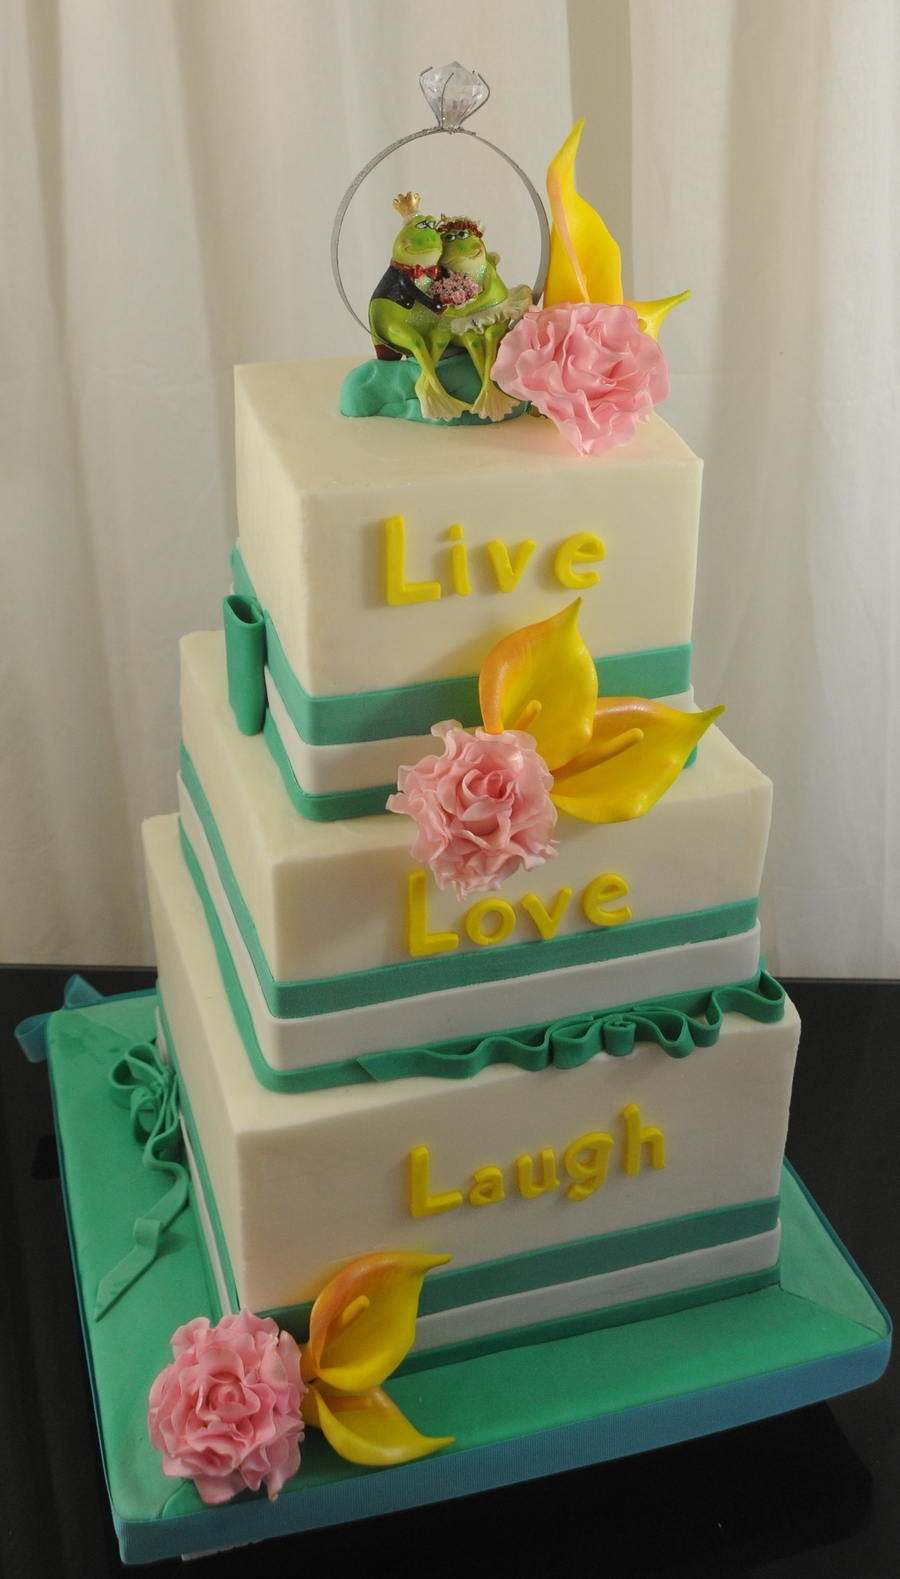 The Cake Was Requested By A Wonderful Customer Who Chose The Design Base On Two Of My Cakes It Is A 10Inch 8 Inch An Six Inch Cake Finishe... on Cake Central